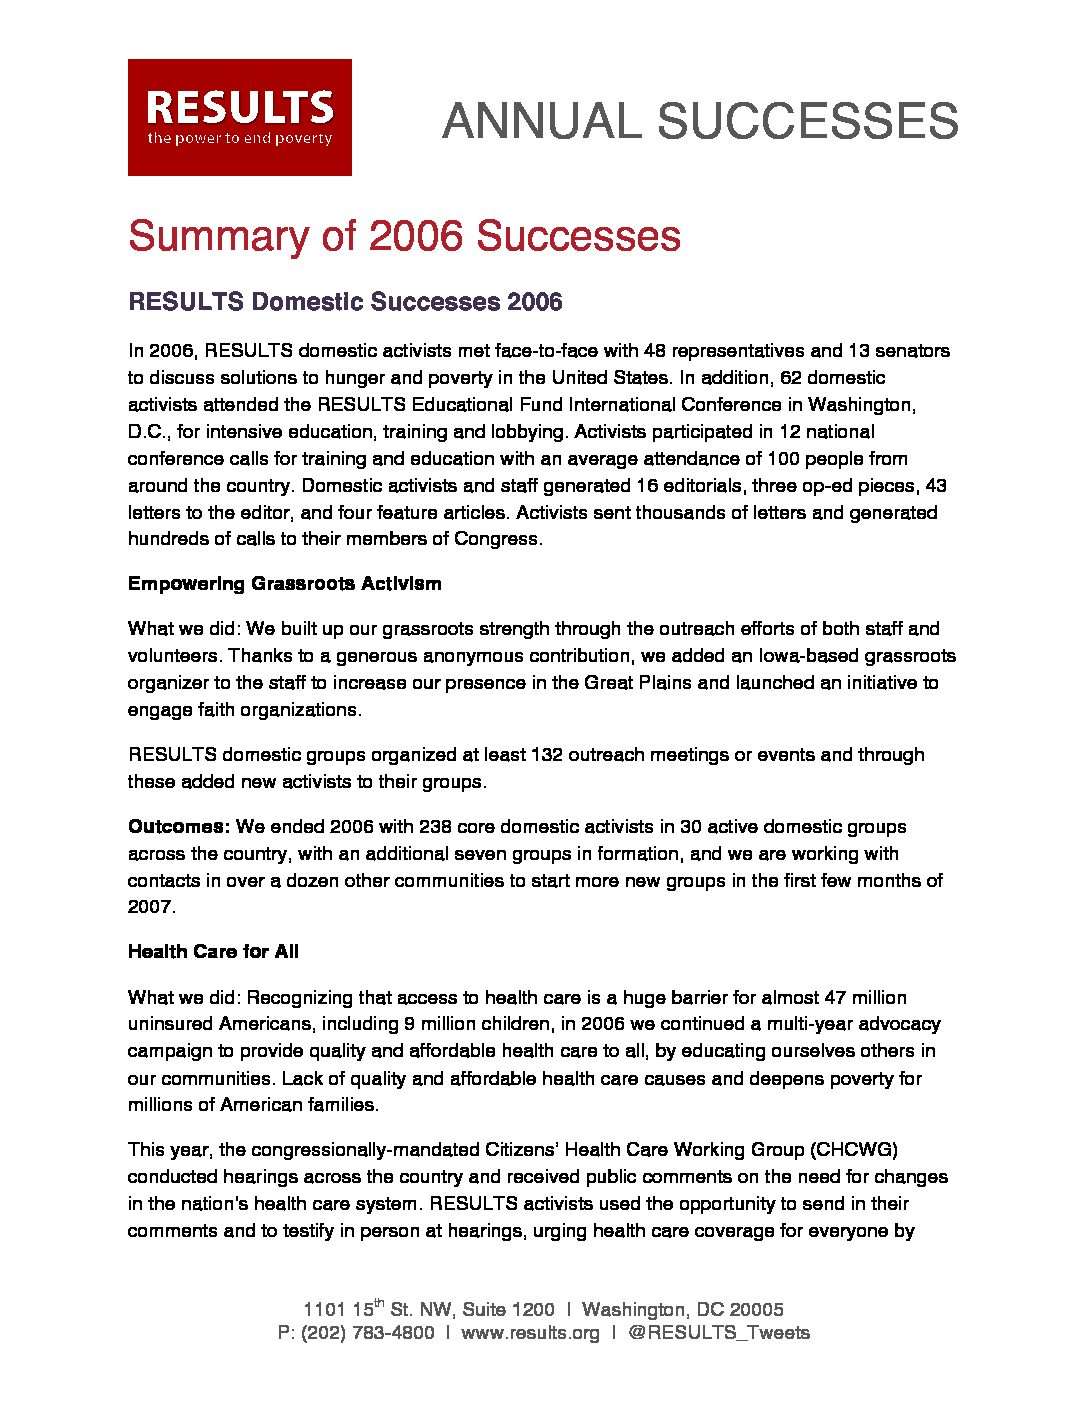 Annual Successes 2006